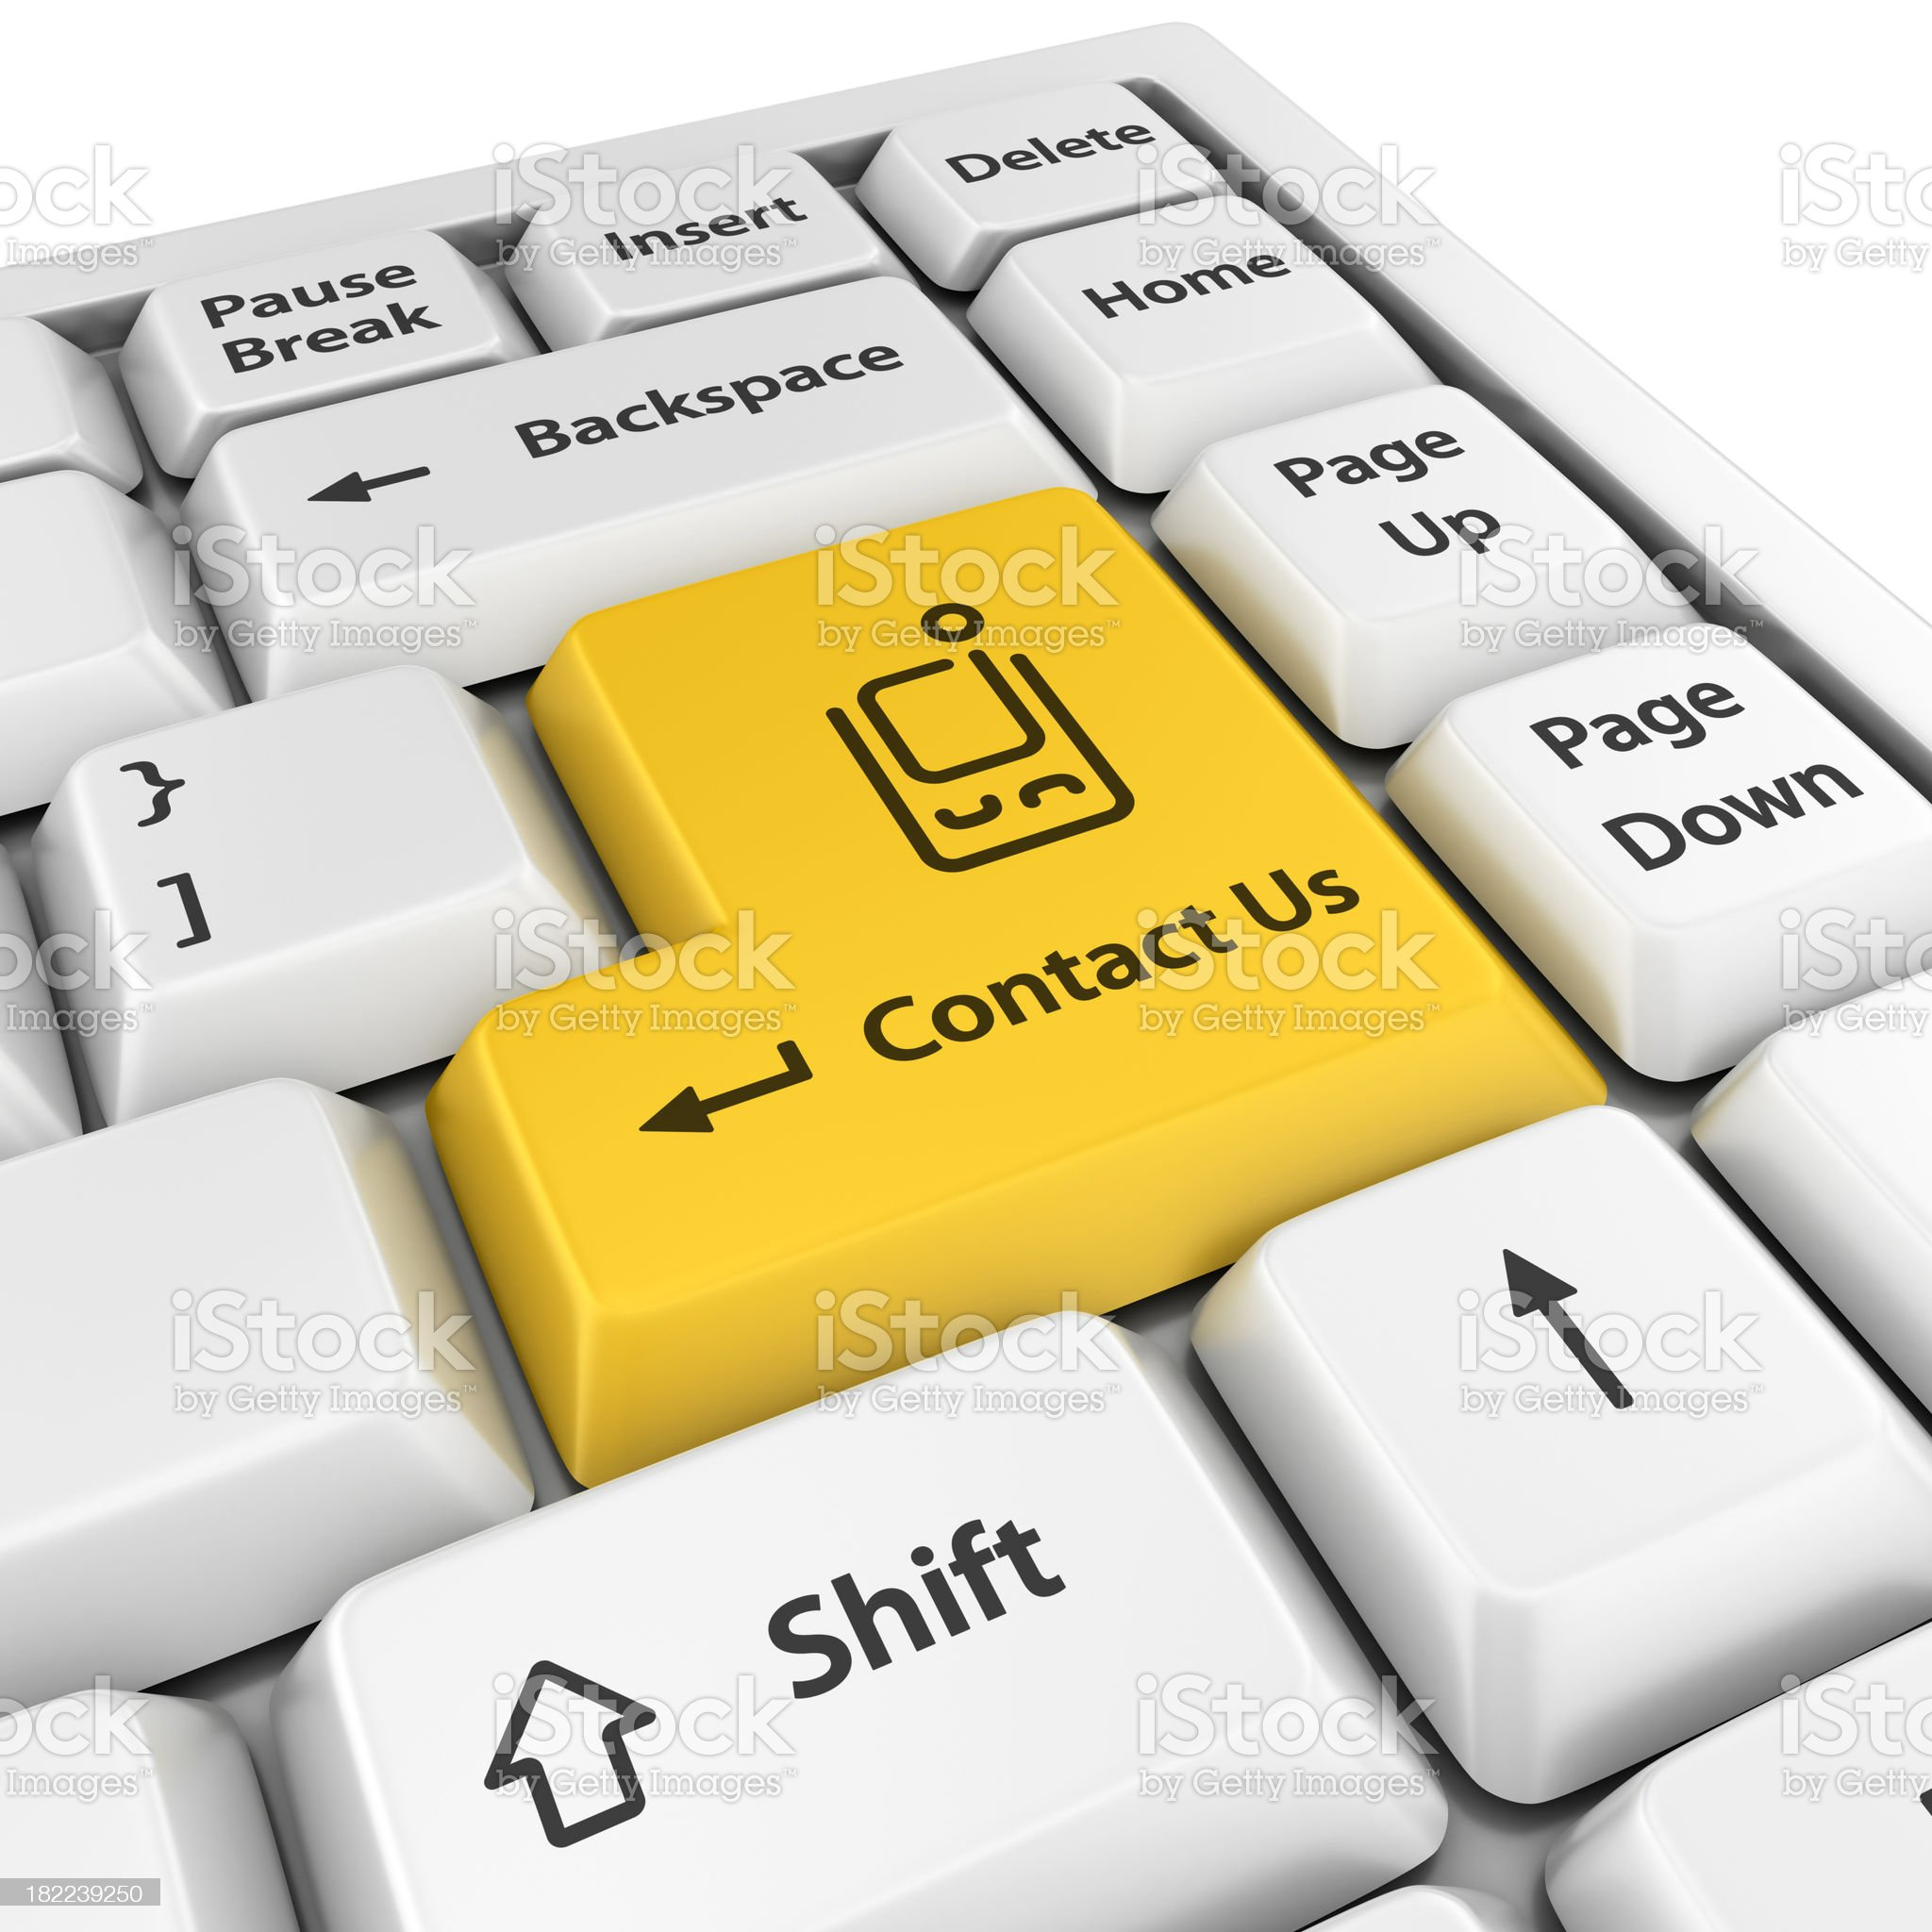 yellow contact us enter button royalty-free stock photo